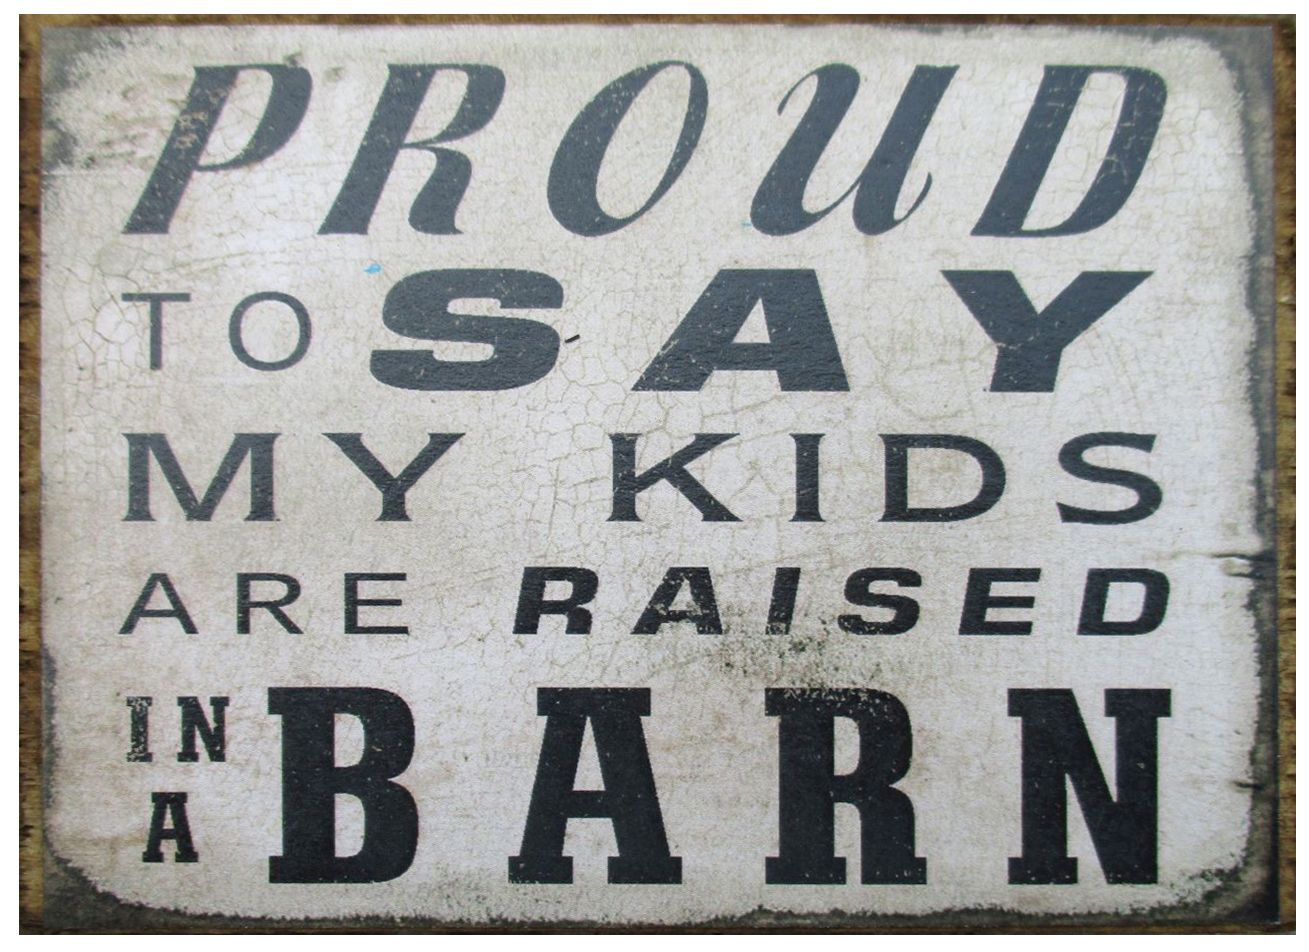 proud to say my kids were raised in a barnproud to say my kids are raised in a barn